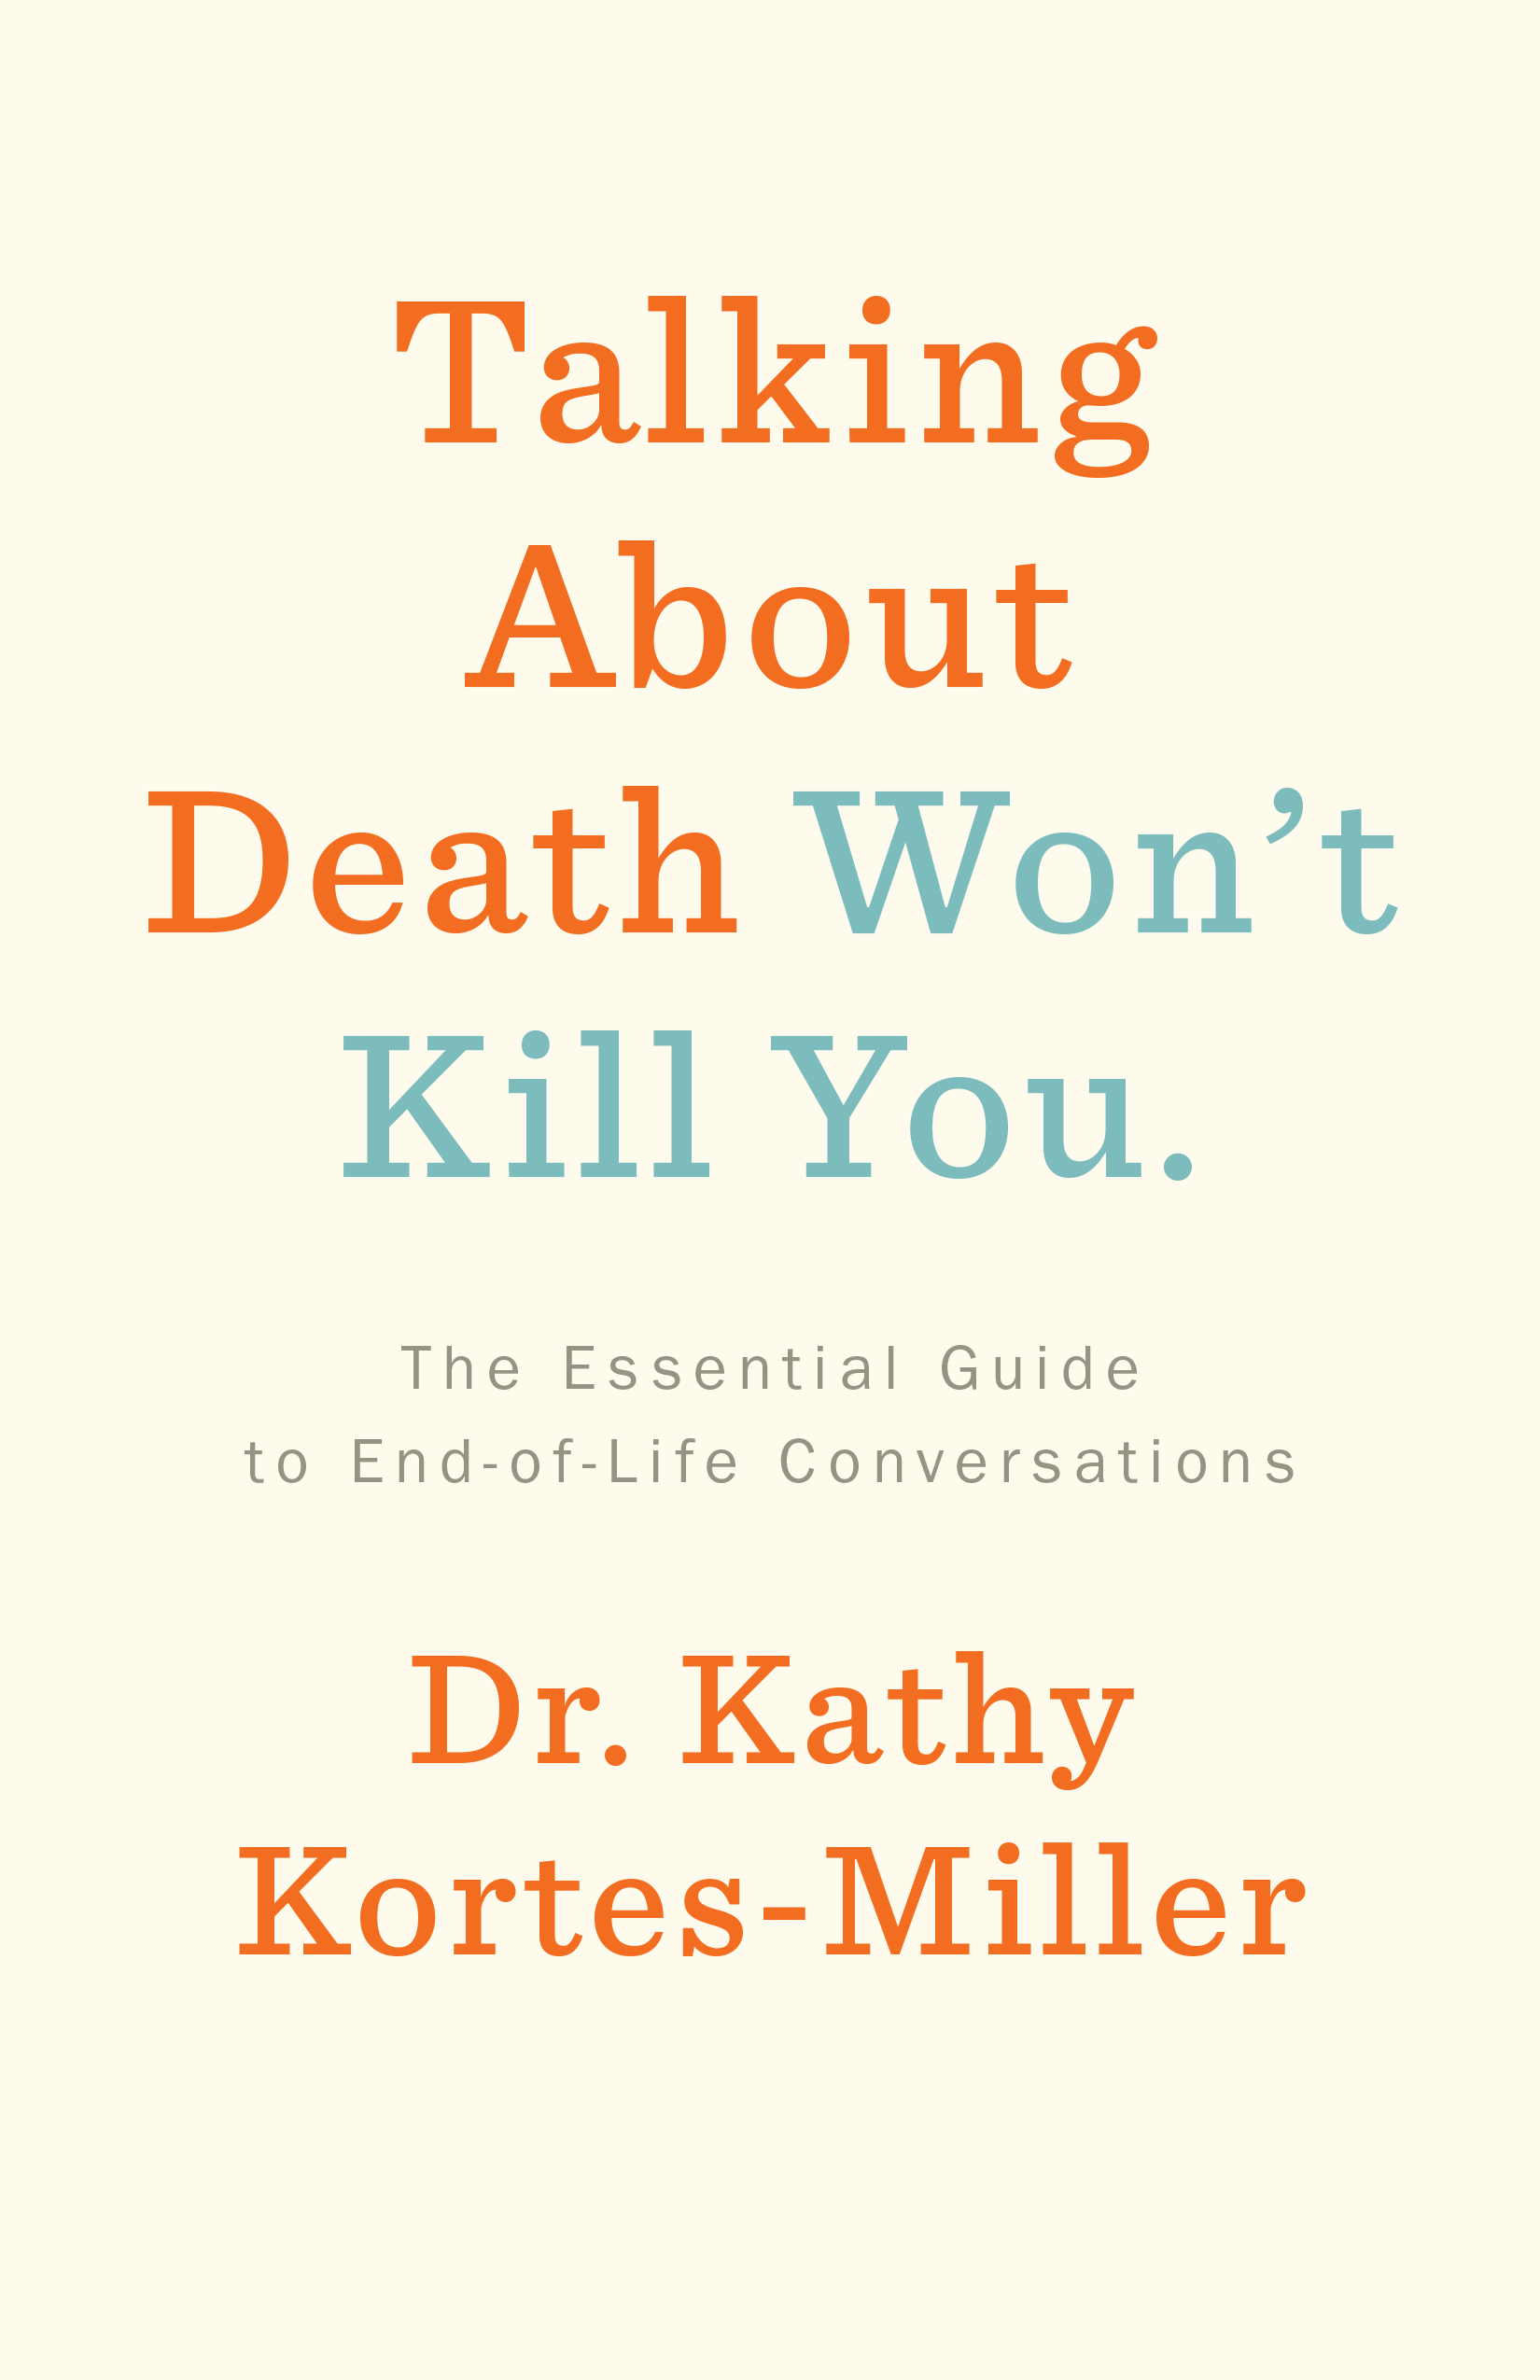 Talking-About-Death-Won-t-Kill-You-The-Essential-Guide-to-End-of-Life-Conversations